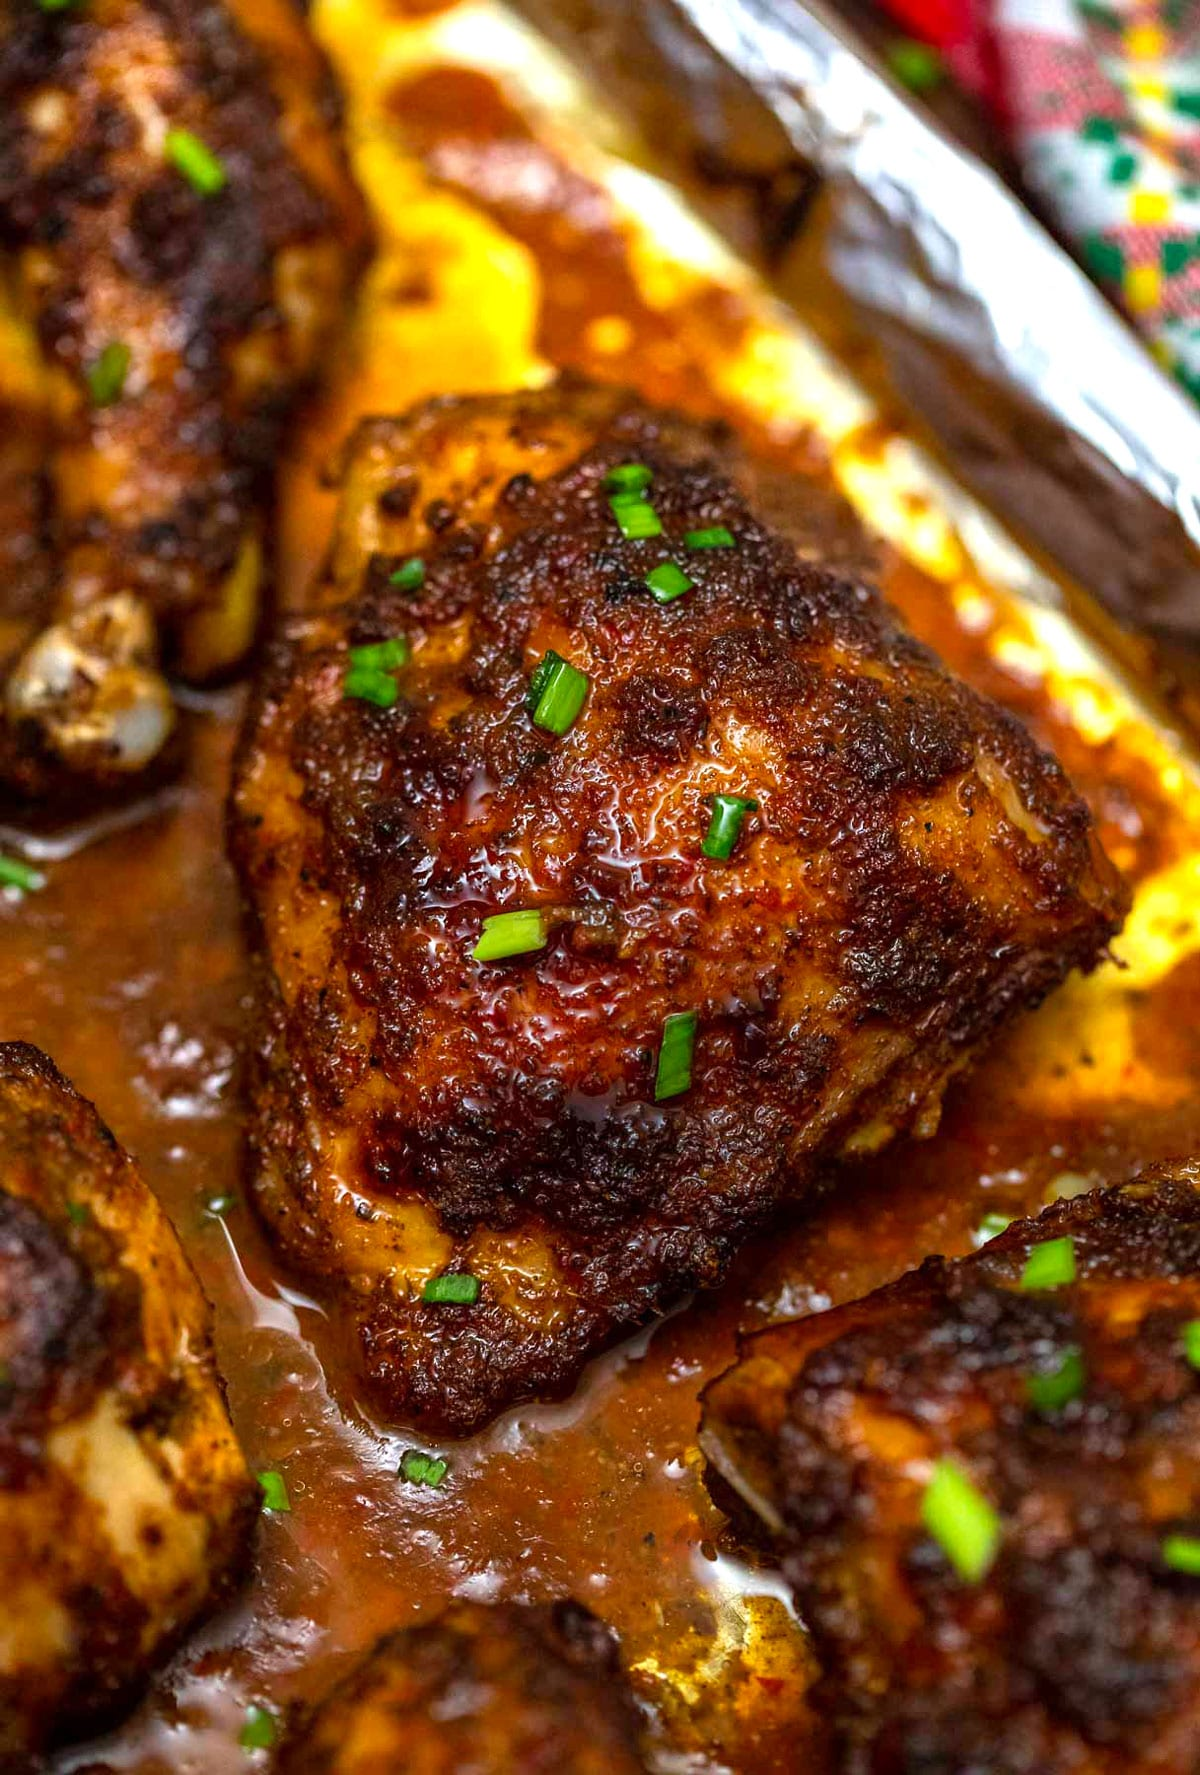 Jerk Chicken Recipe Video Sweet And Savory Meals